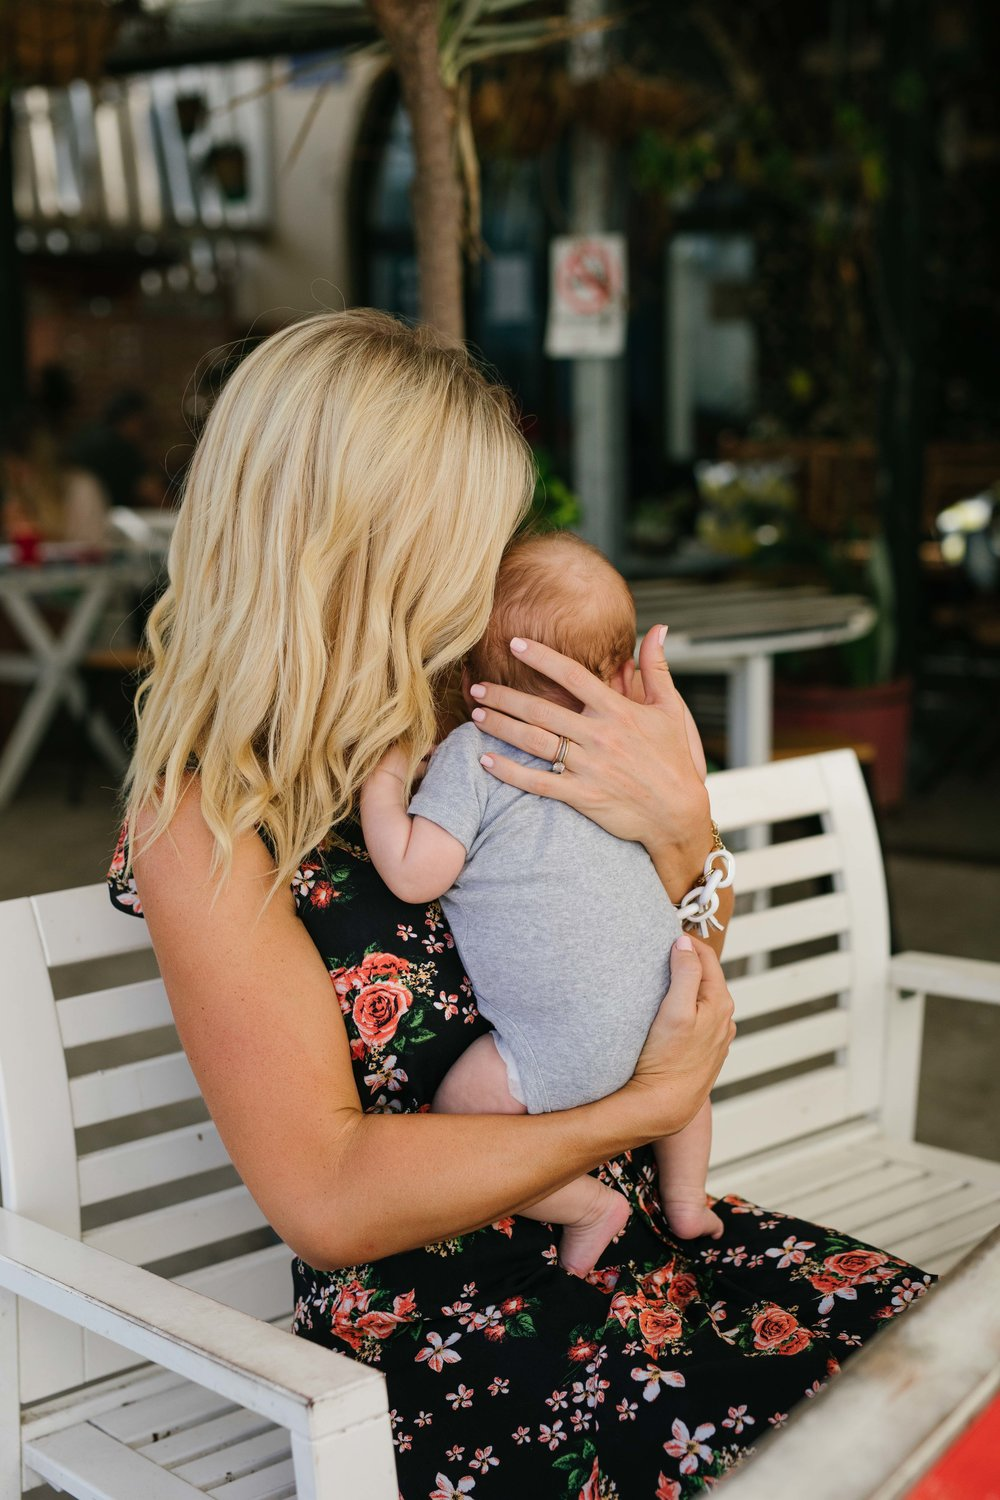 anna kooiman breastfeeding and nursing fashion new mom sydney australia bondi beach baby mum mummy mom dog lab labrador babies style fashion what to wear